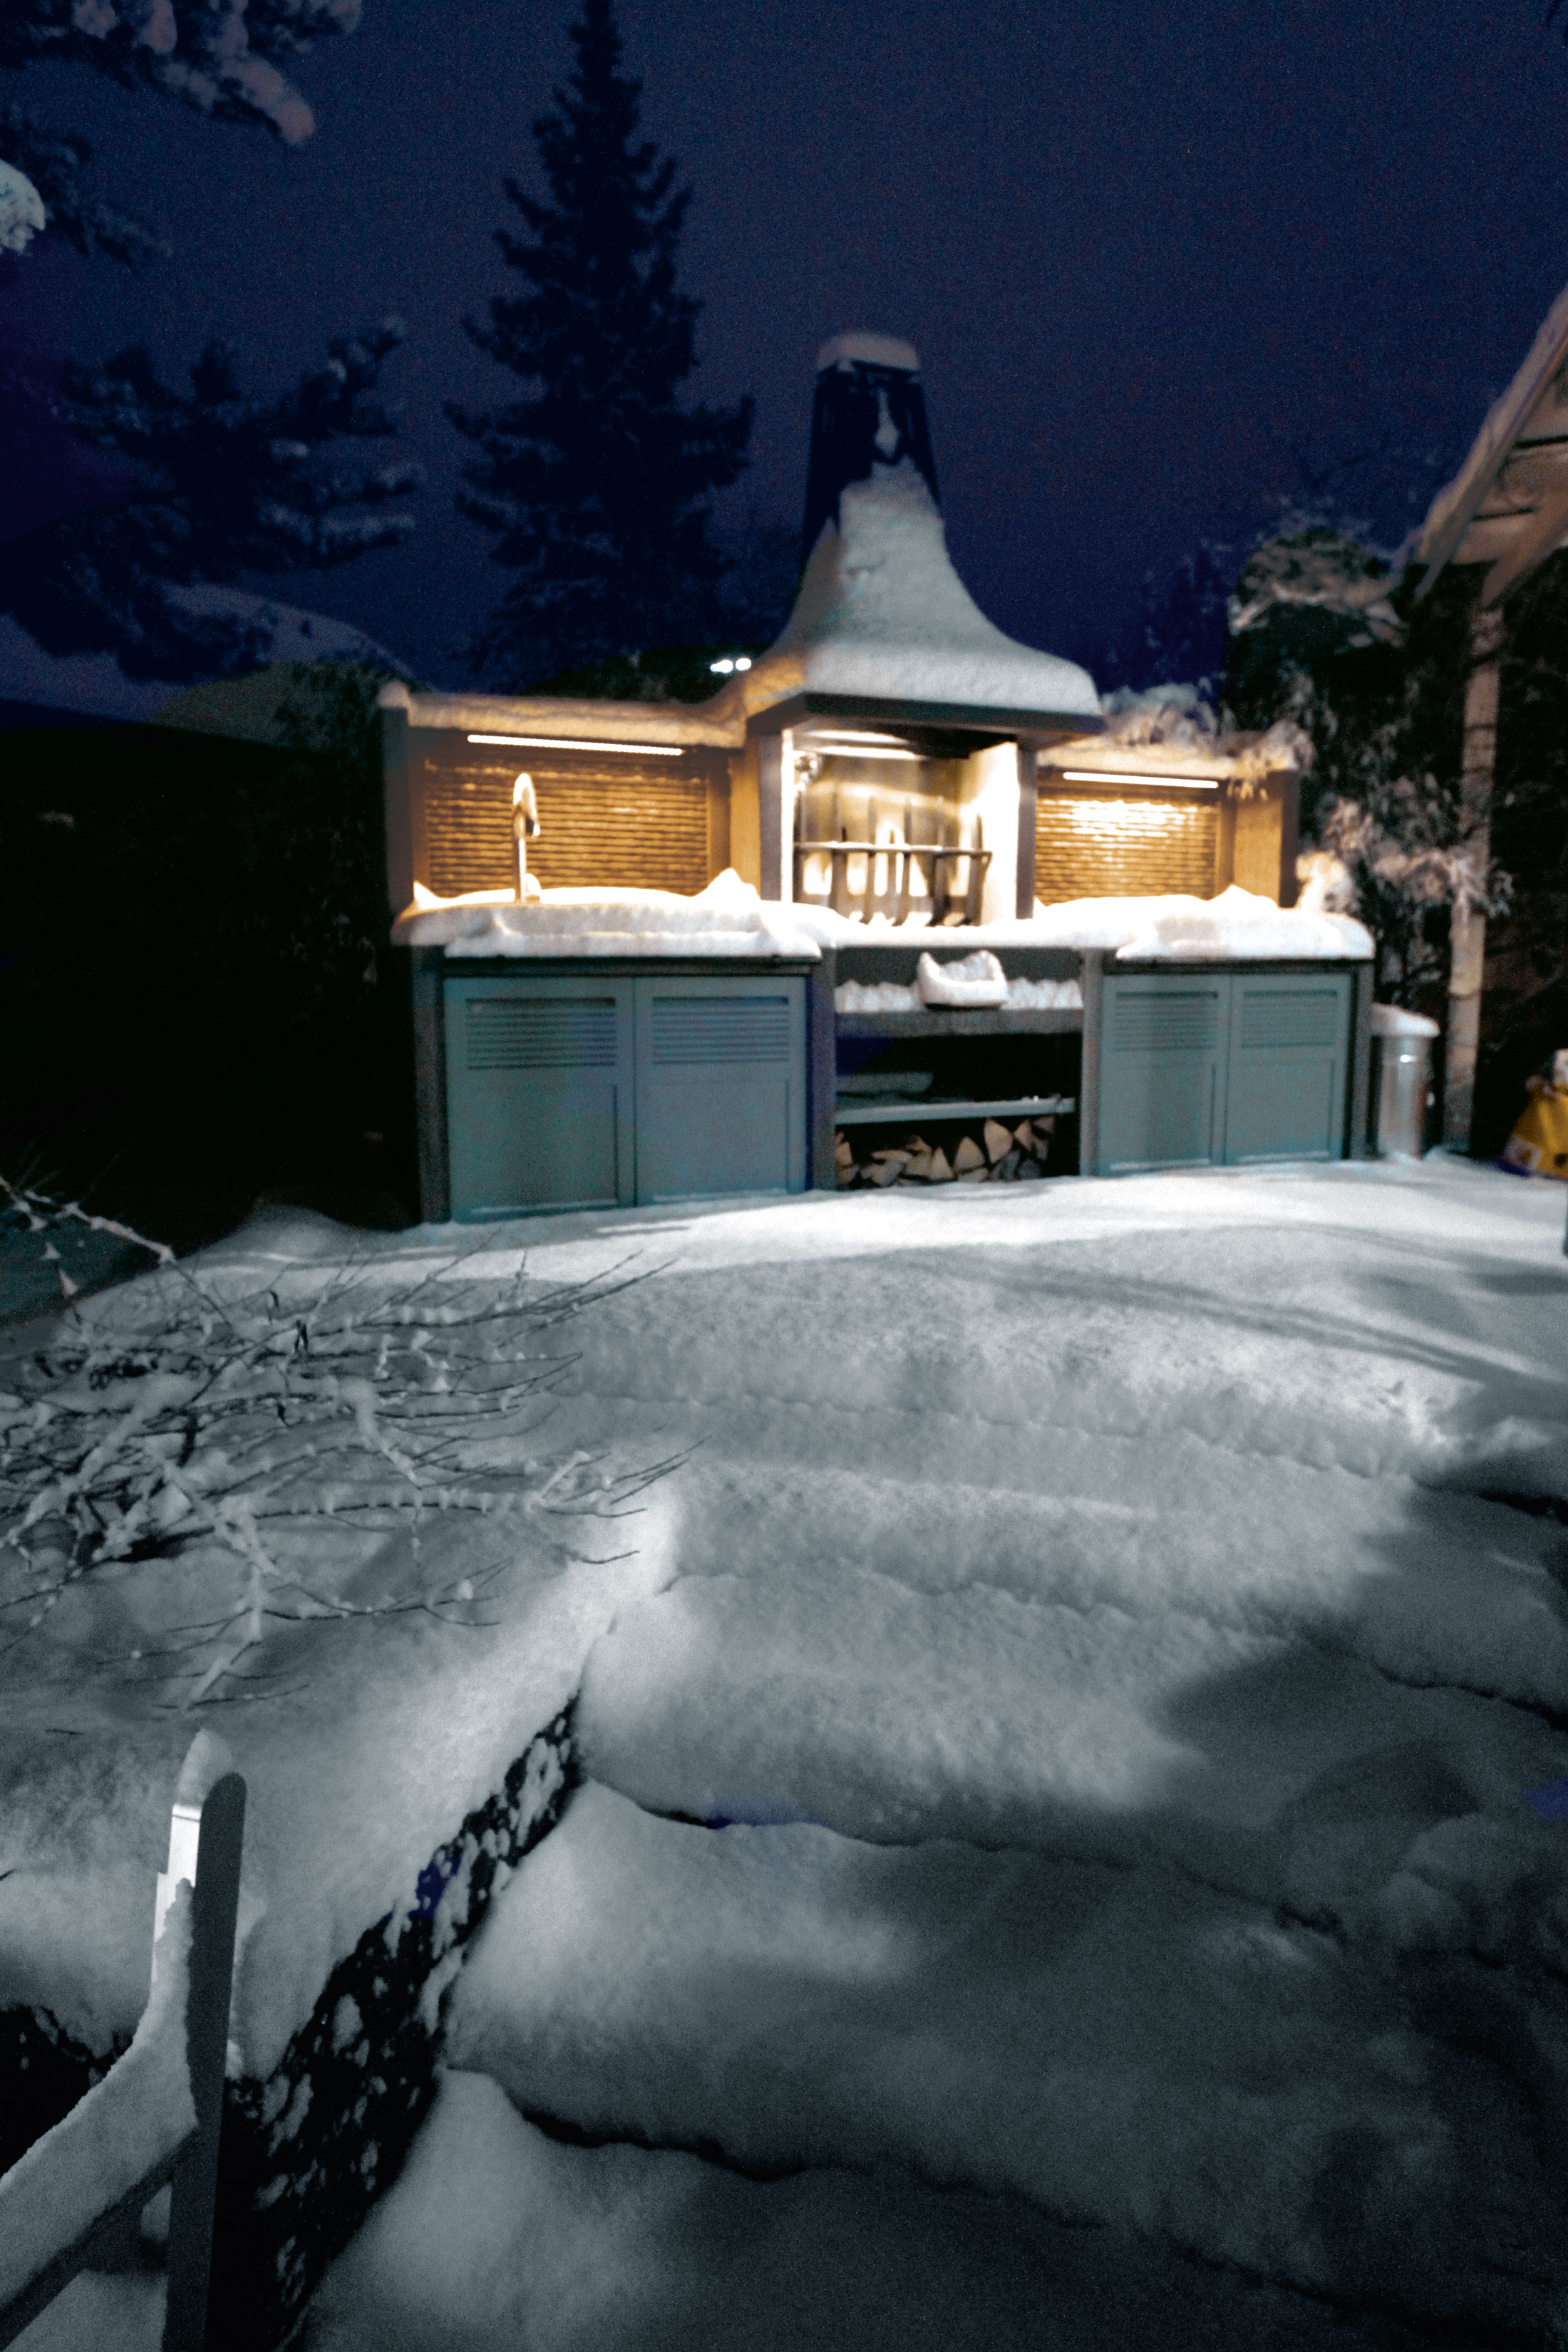 The best protection in wintertimes for the outdoor kitchen is snow